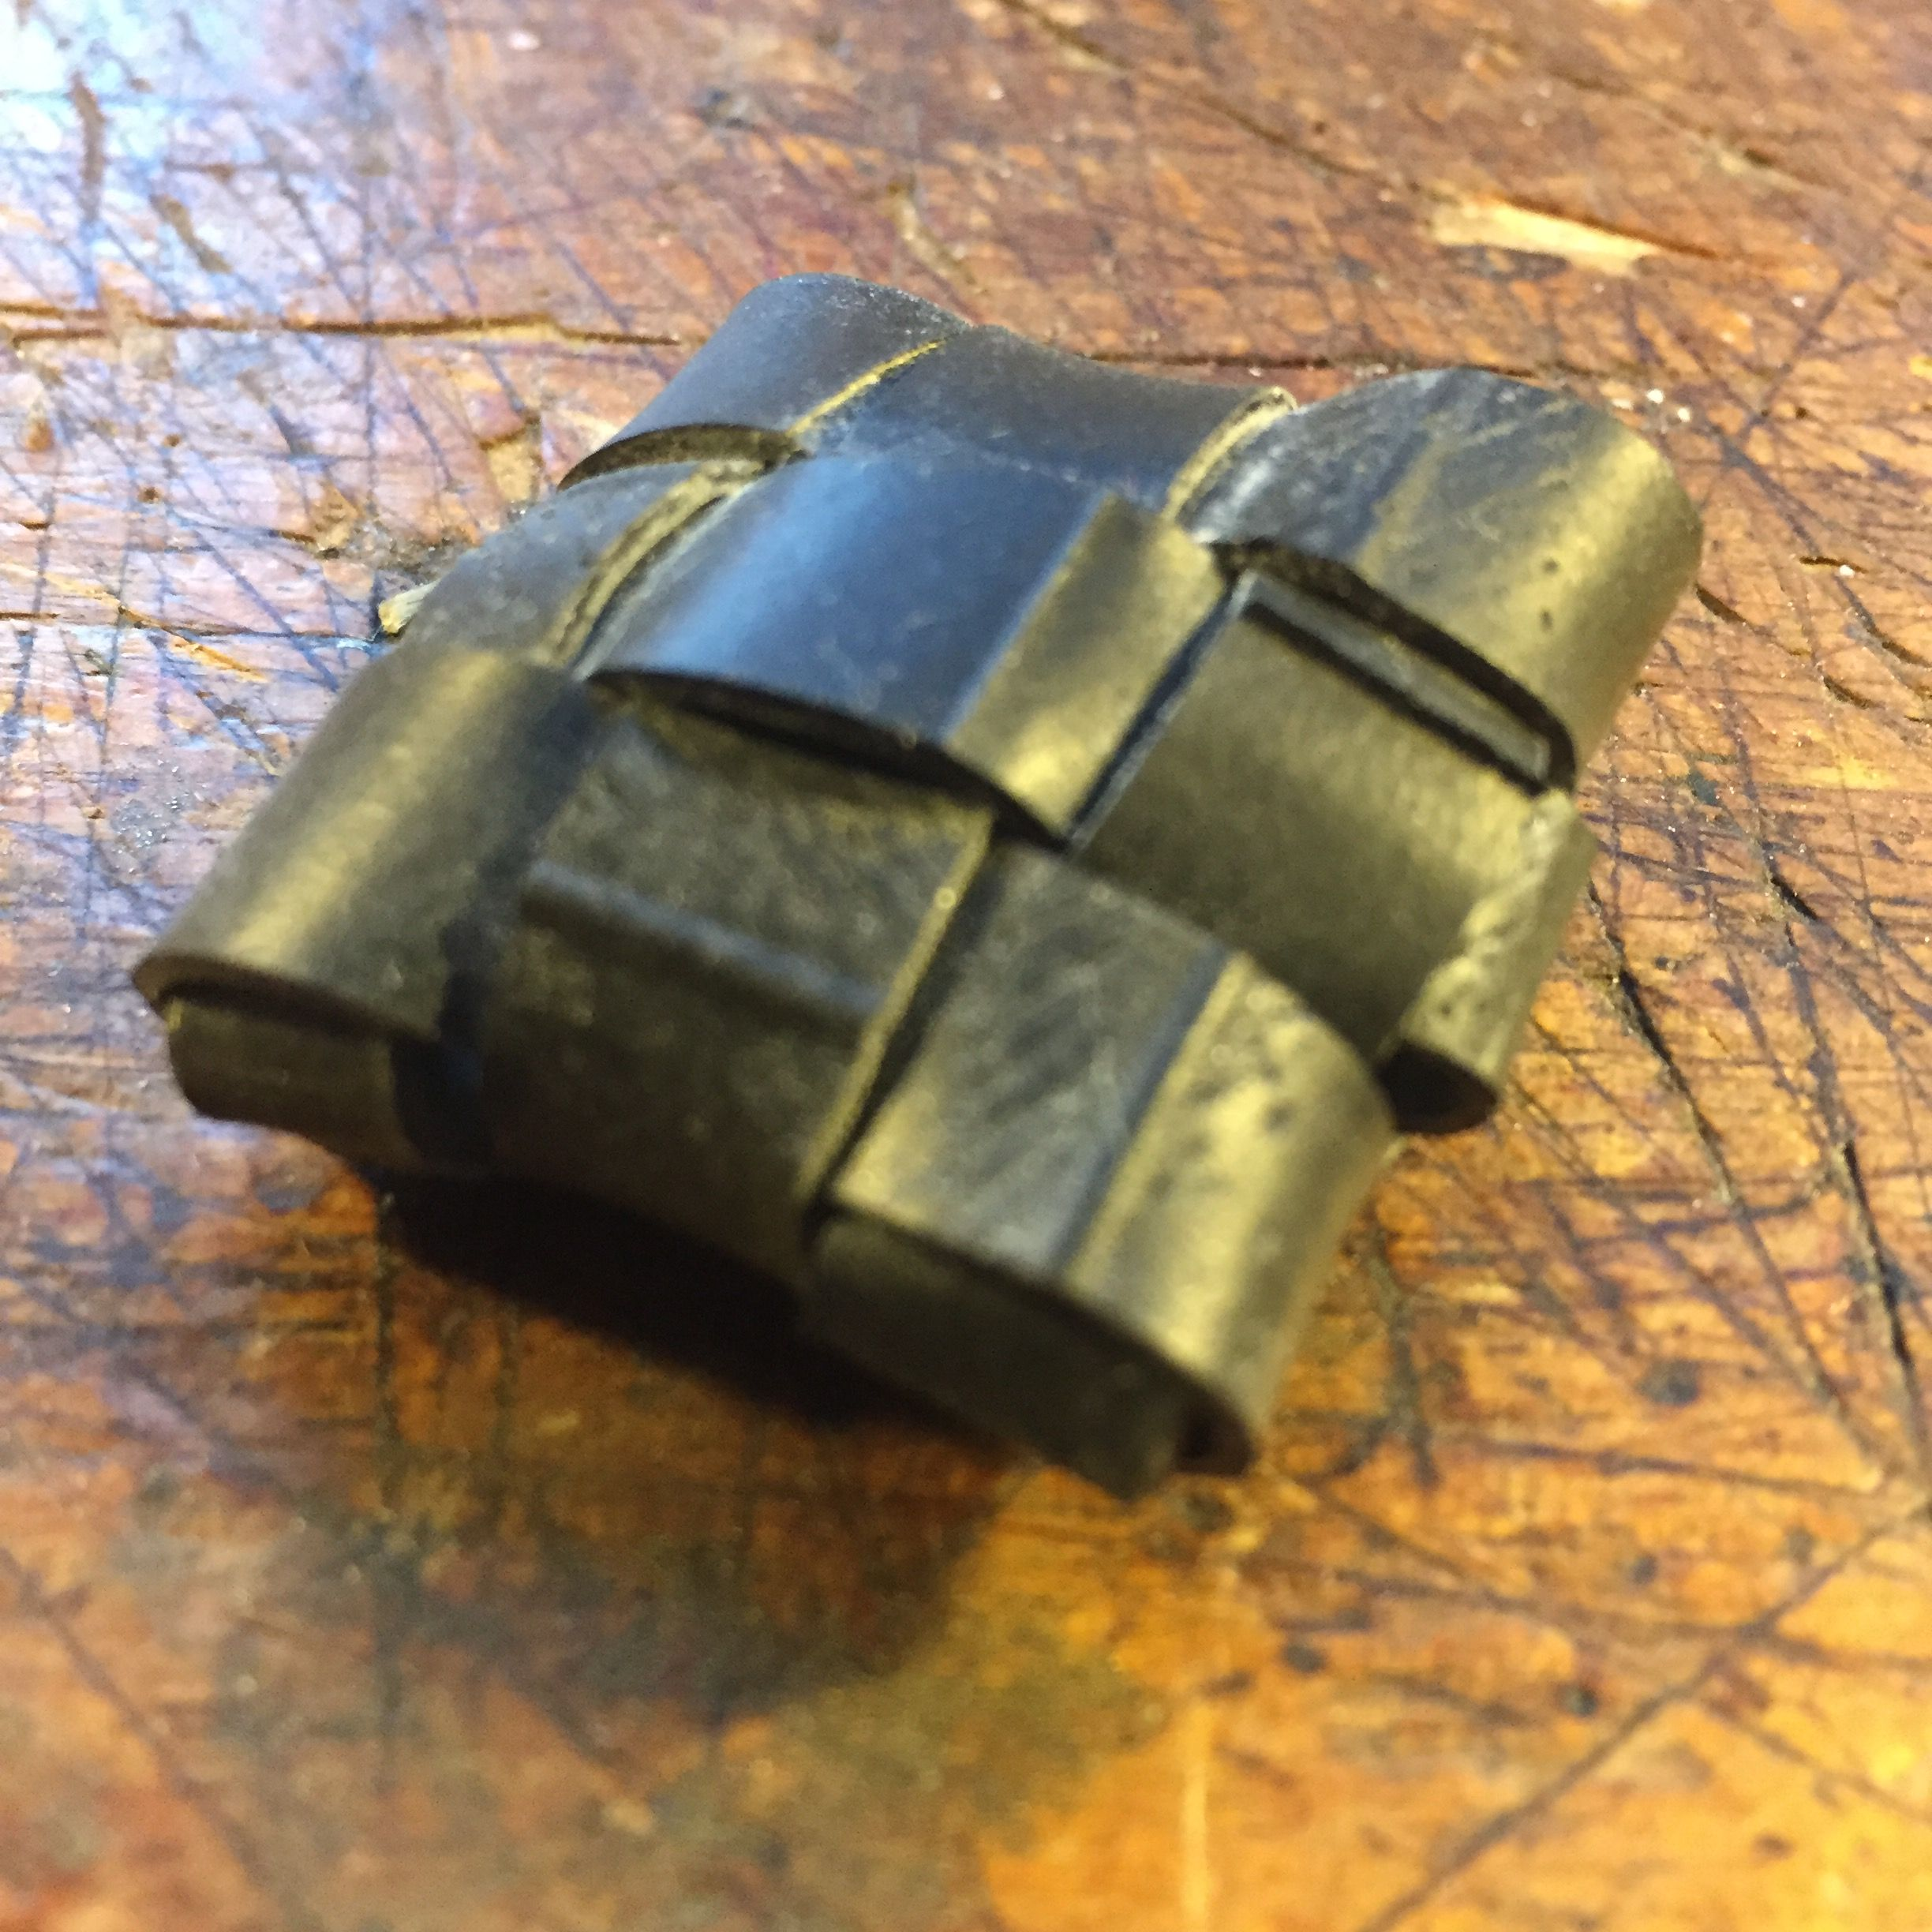 Pin by Jacob Fl¸che on Recycled Rubber Tube